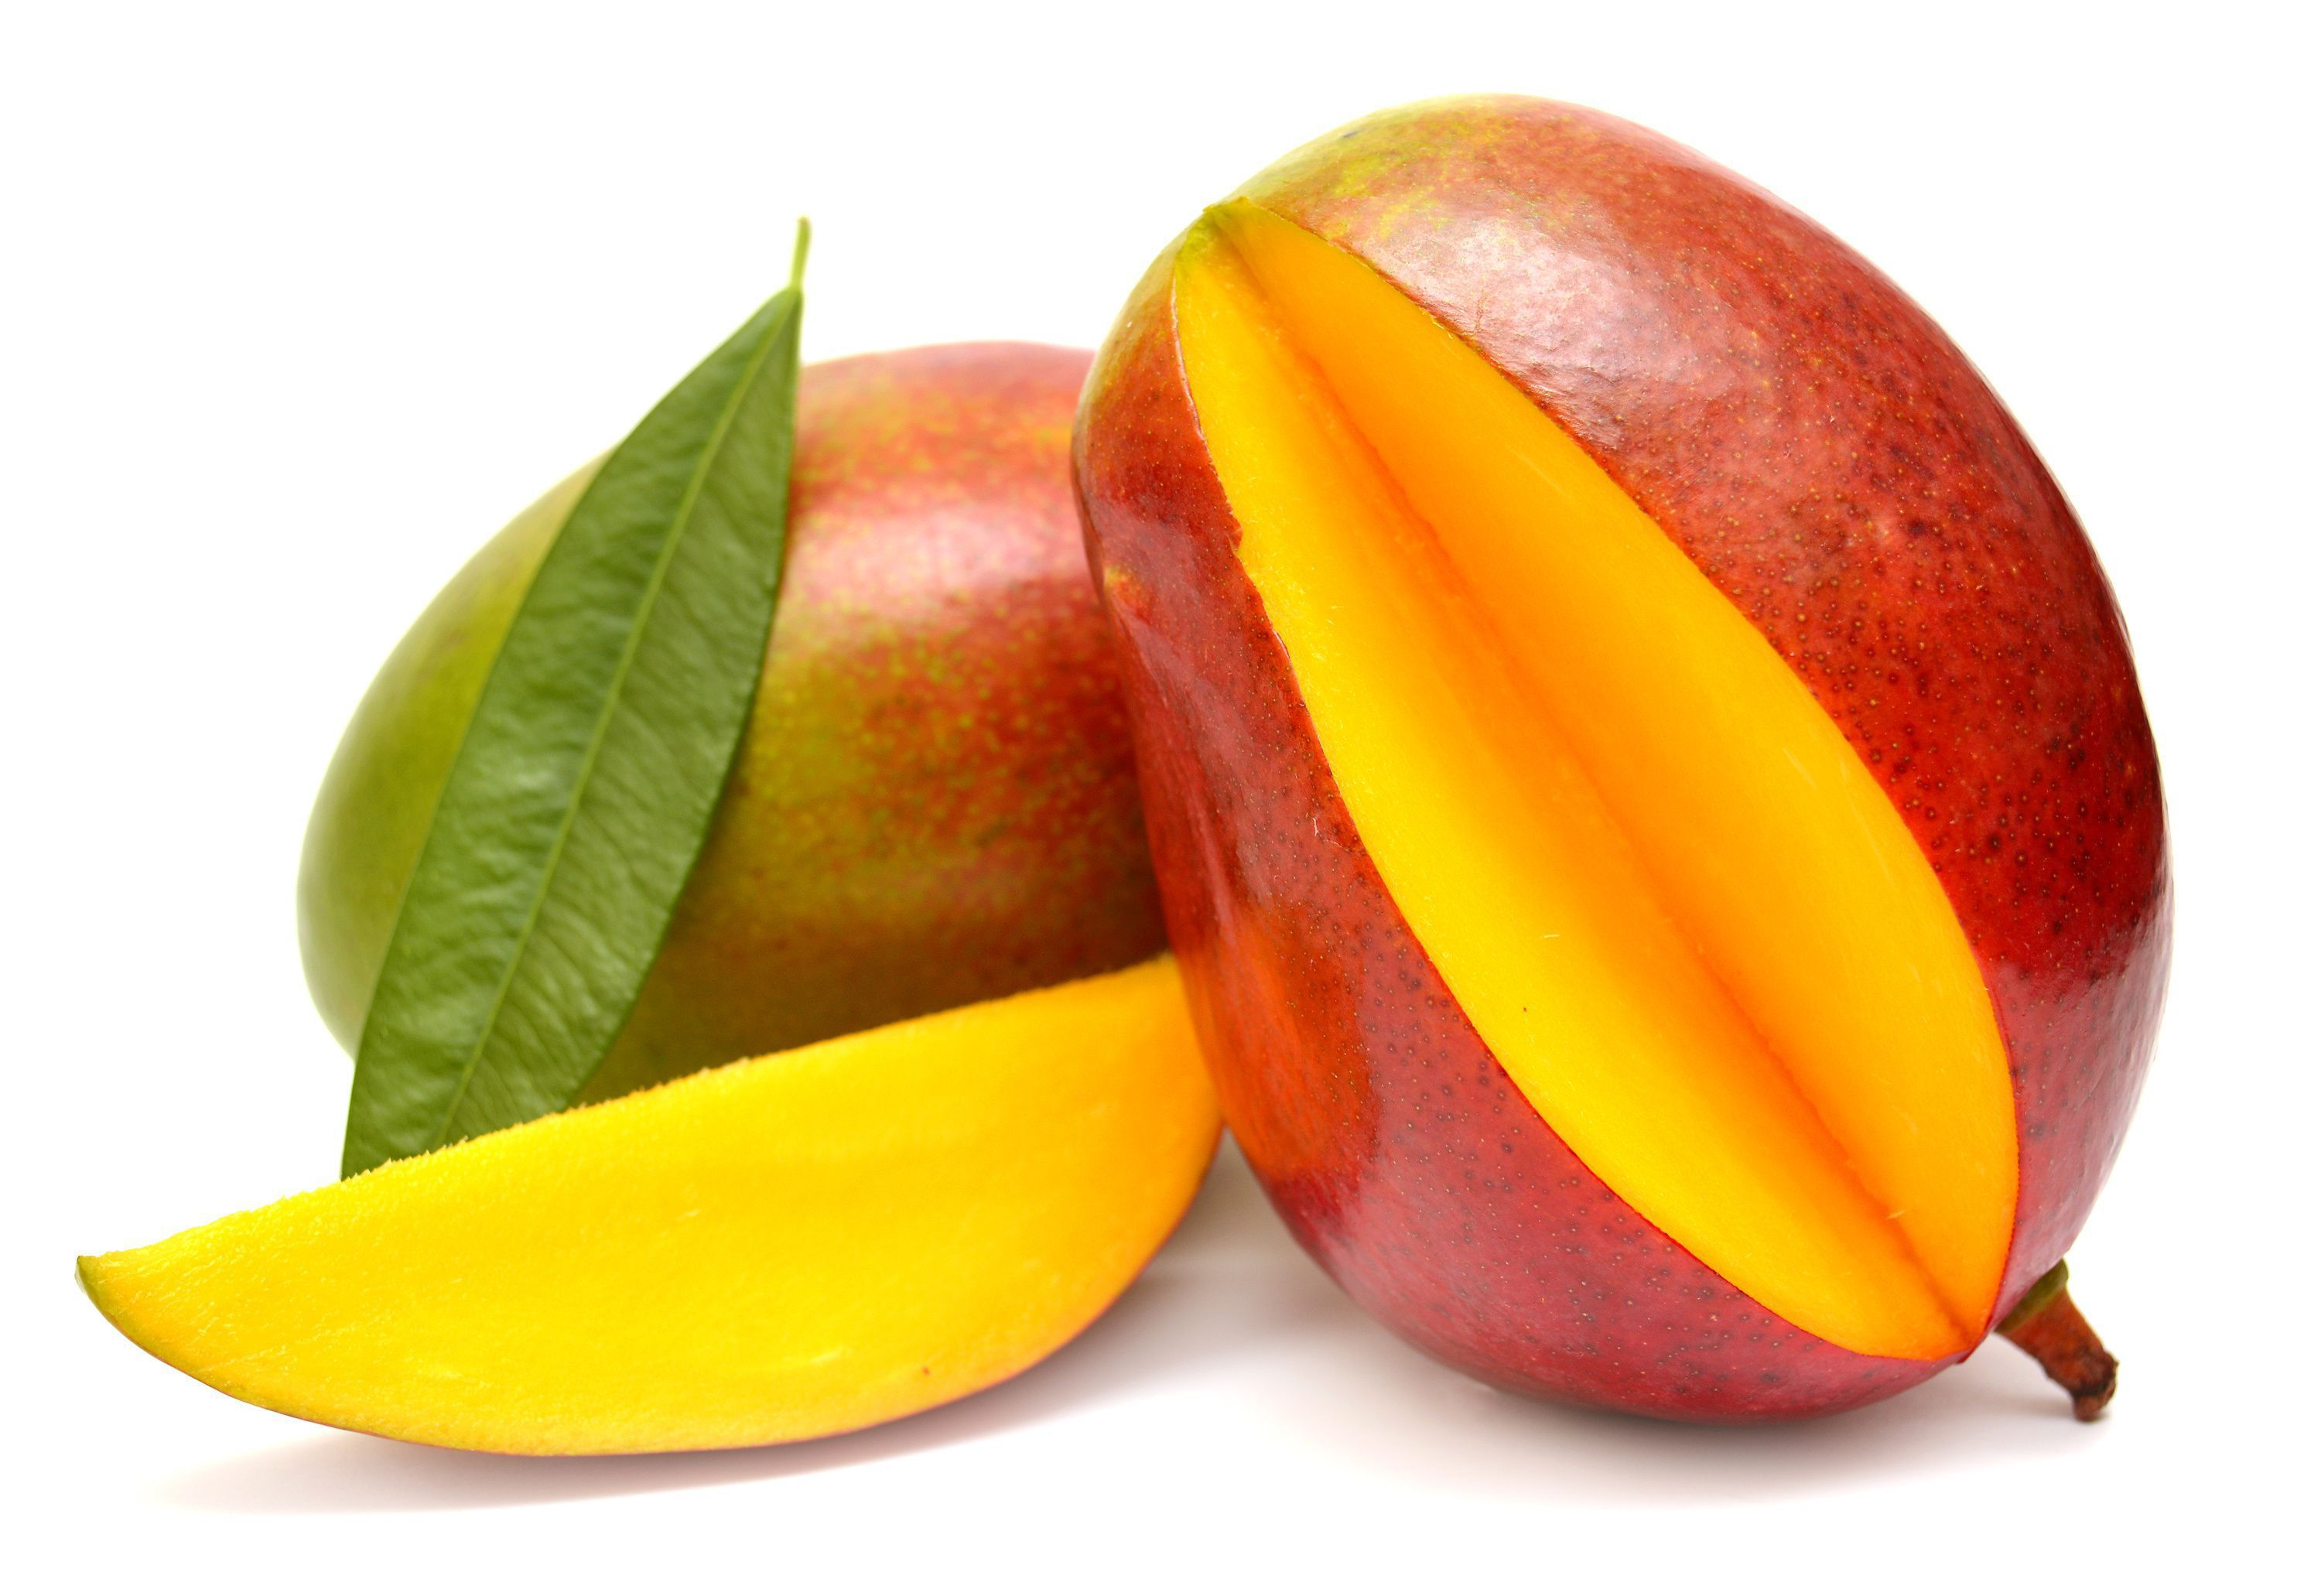 Mango Wallpapers Images Photos Pictures Backgrounds